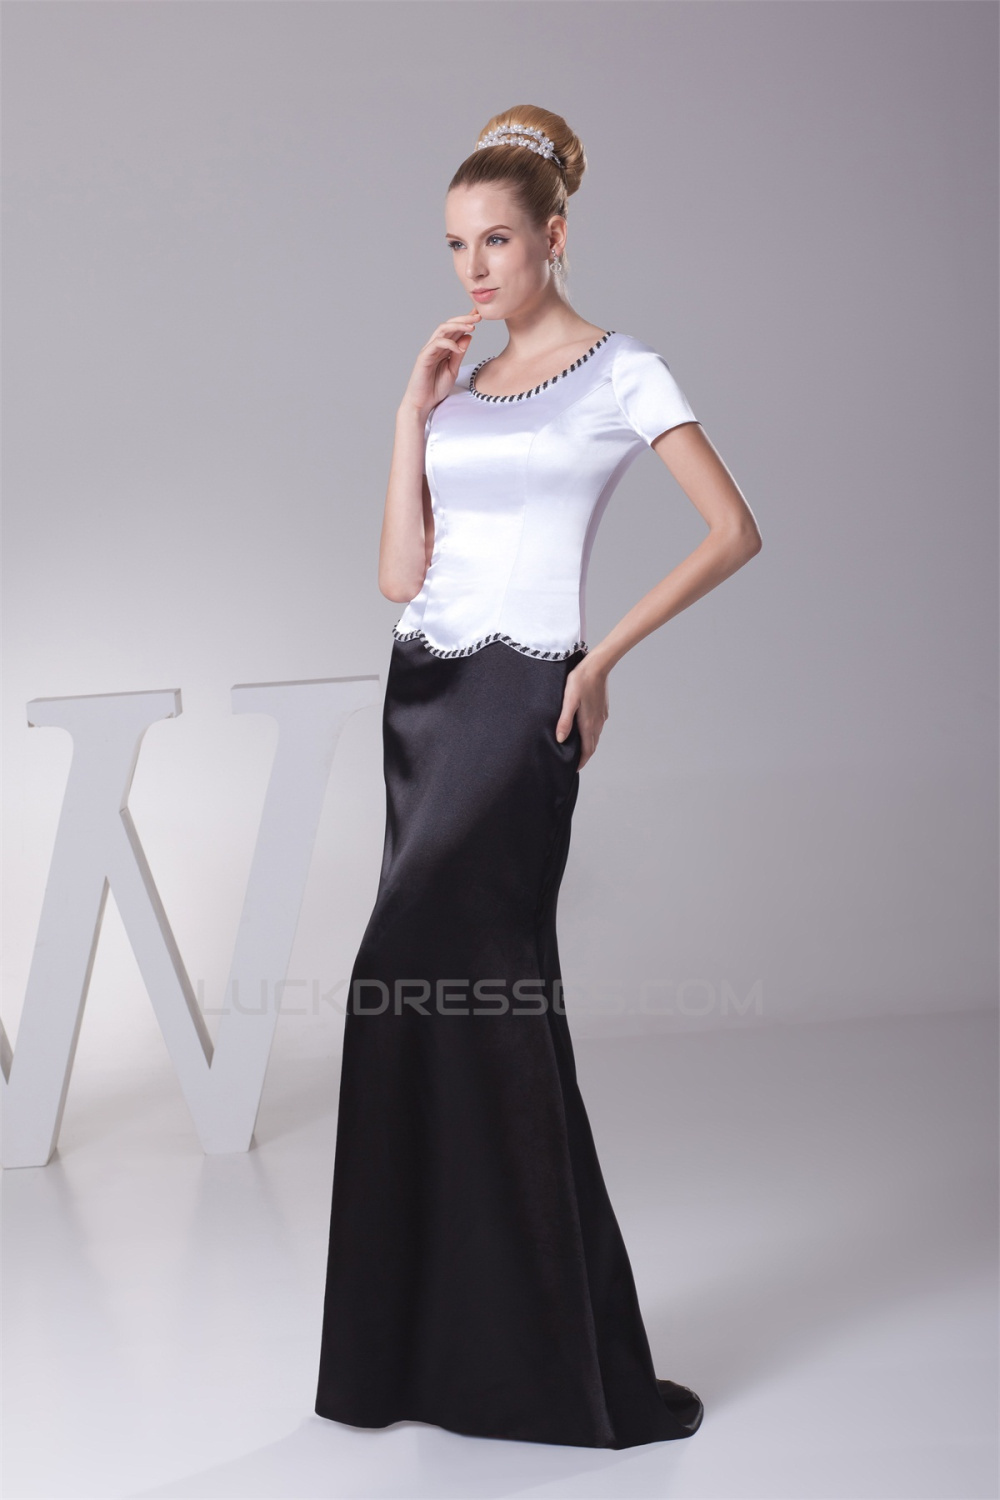 822012333c2 Black And White Mother Of The Bride Dresses - Data Dynamic AG